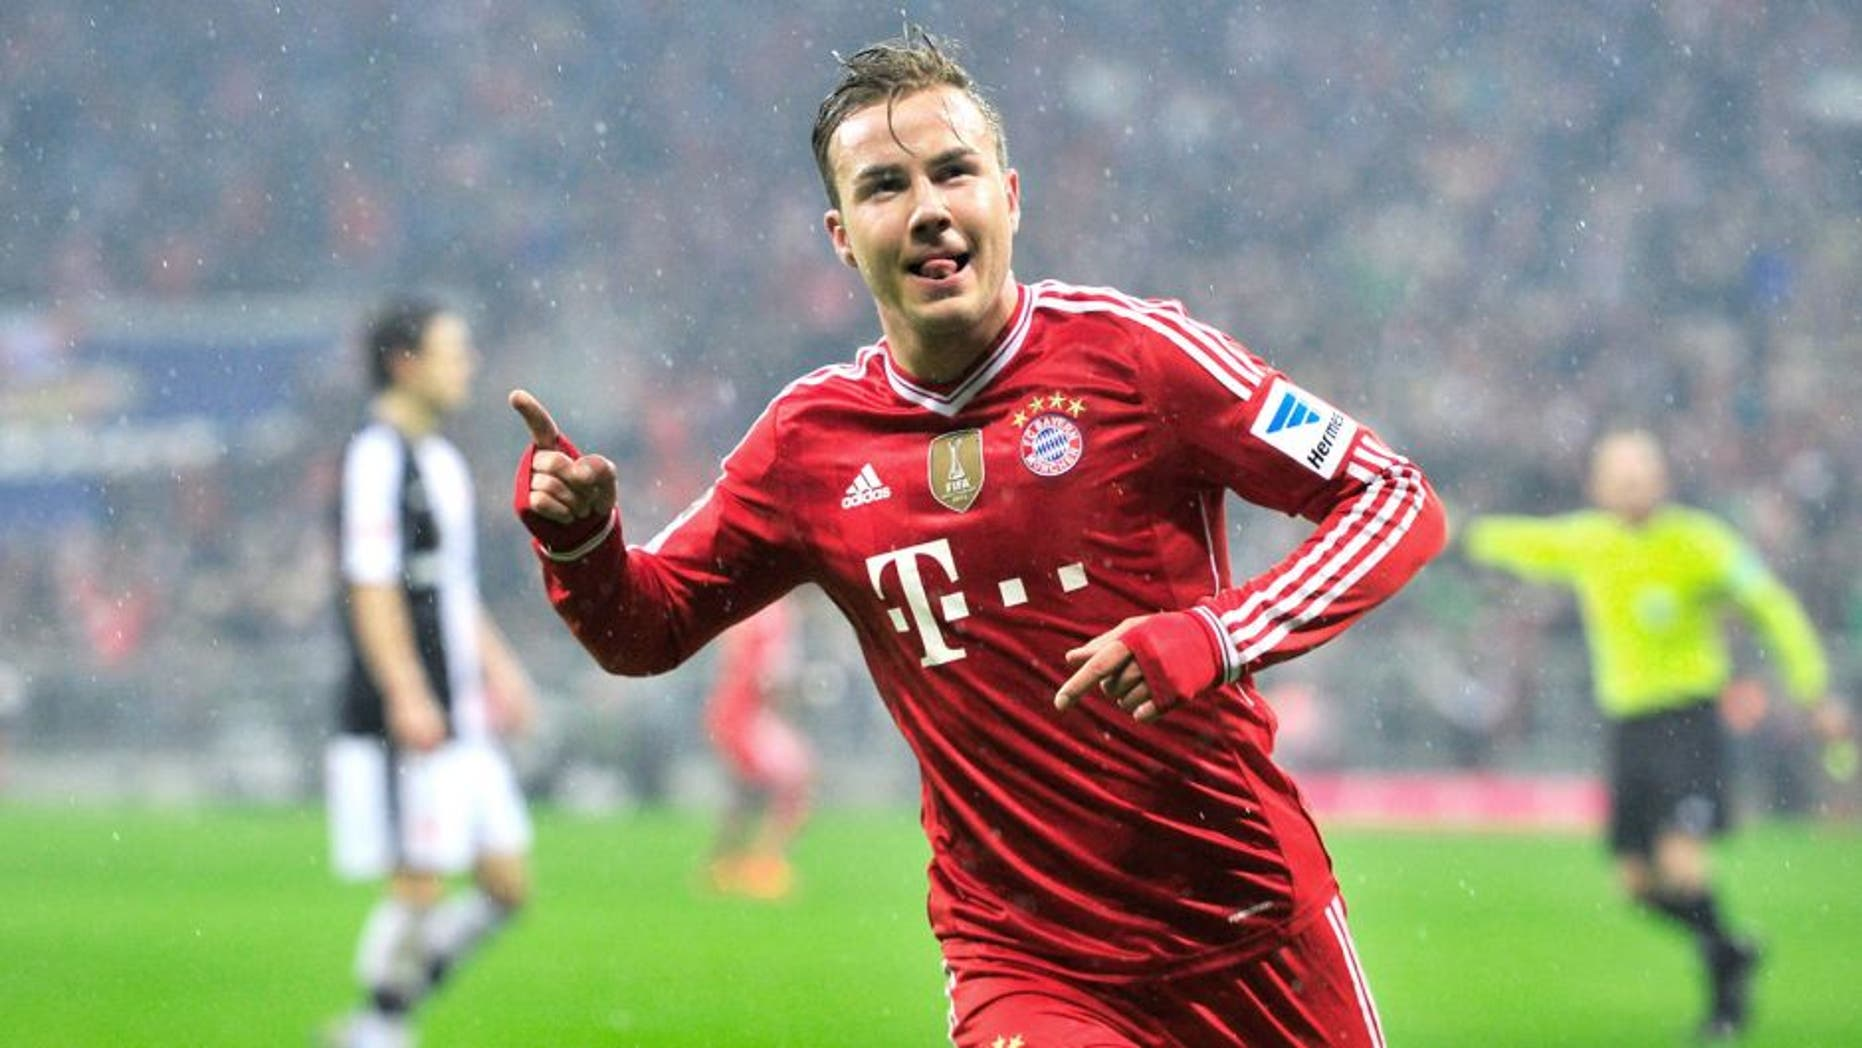 MUNICH, GERMANY - FEBRUARY 02: Mario Goetze of Muenchen celebrates his opening goal during the Bundesliga match between FC Bayern Muenchen and Eintracht Frankfurt at Allianz Arena on February 2, 2014 in Munich, Germany. (Photo by Lennart Preiss/Bongarts/Getty Images)